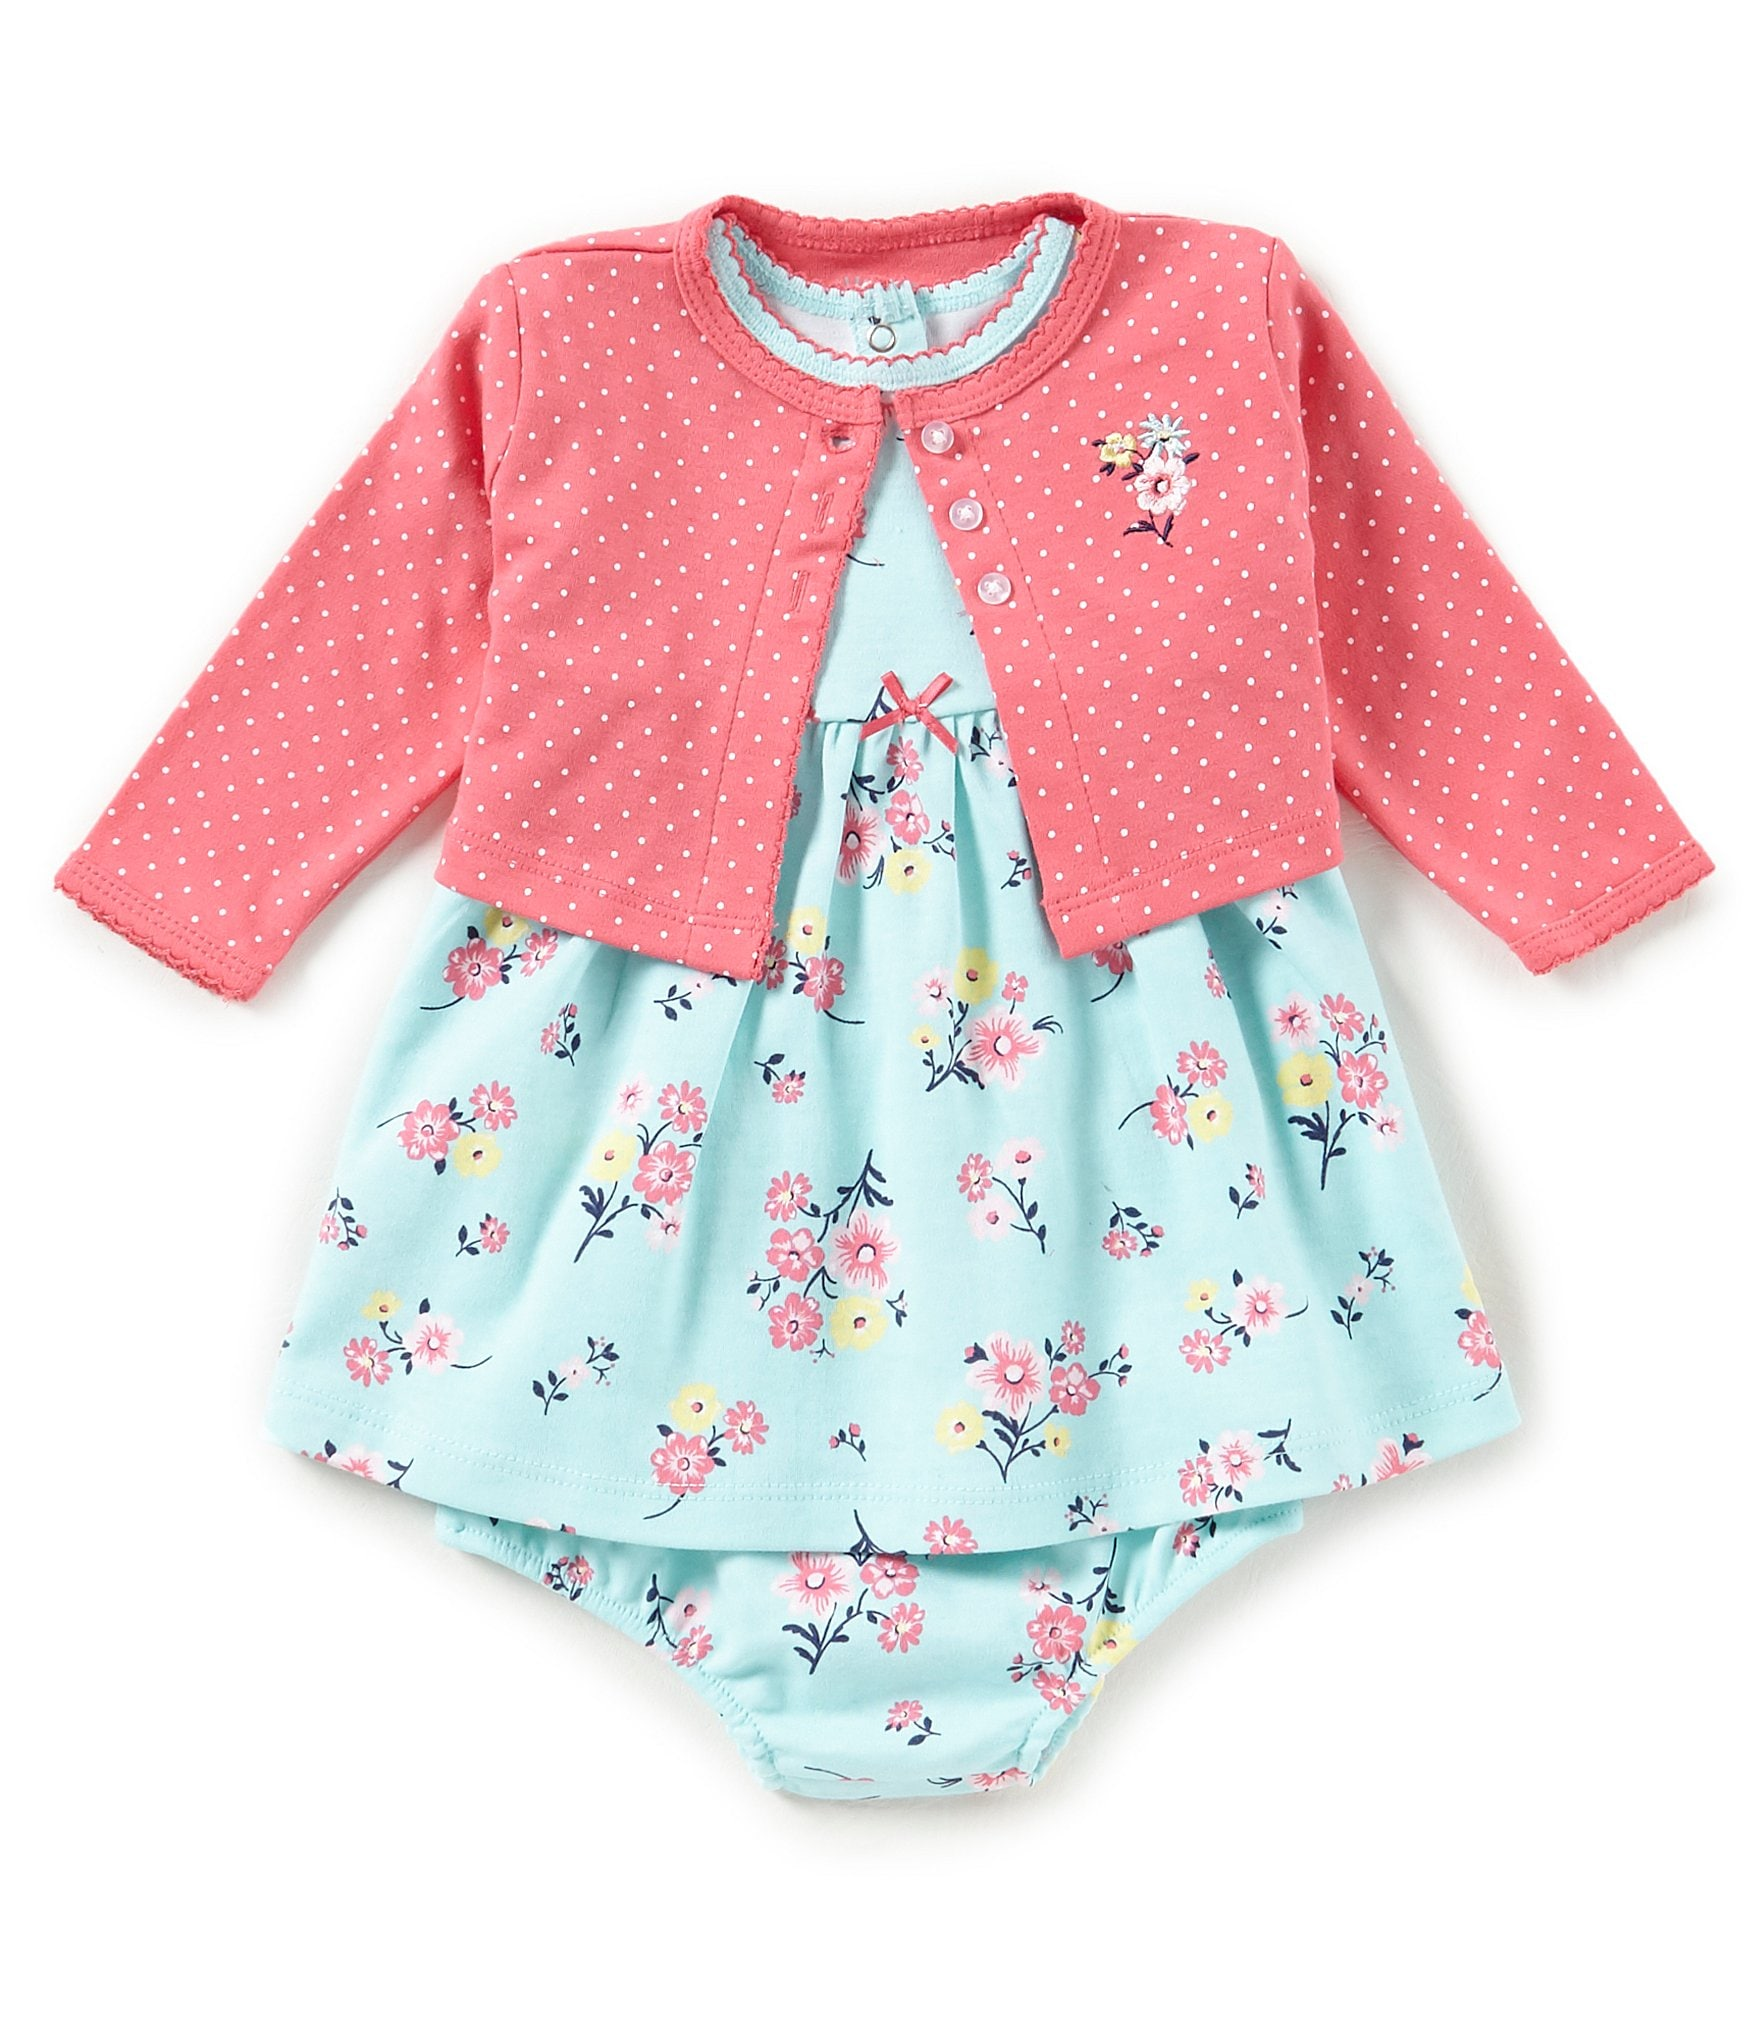 Little Me Baby Girl Clothing